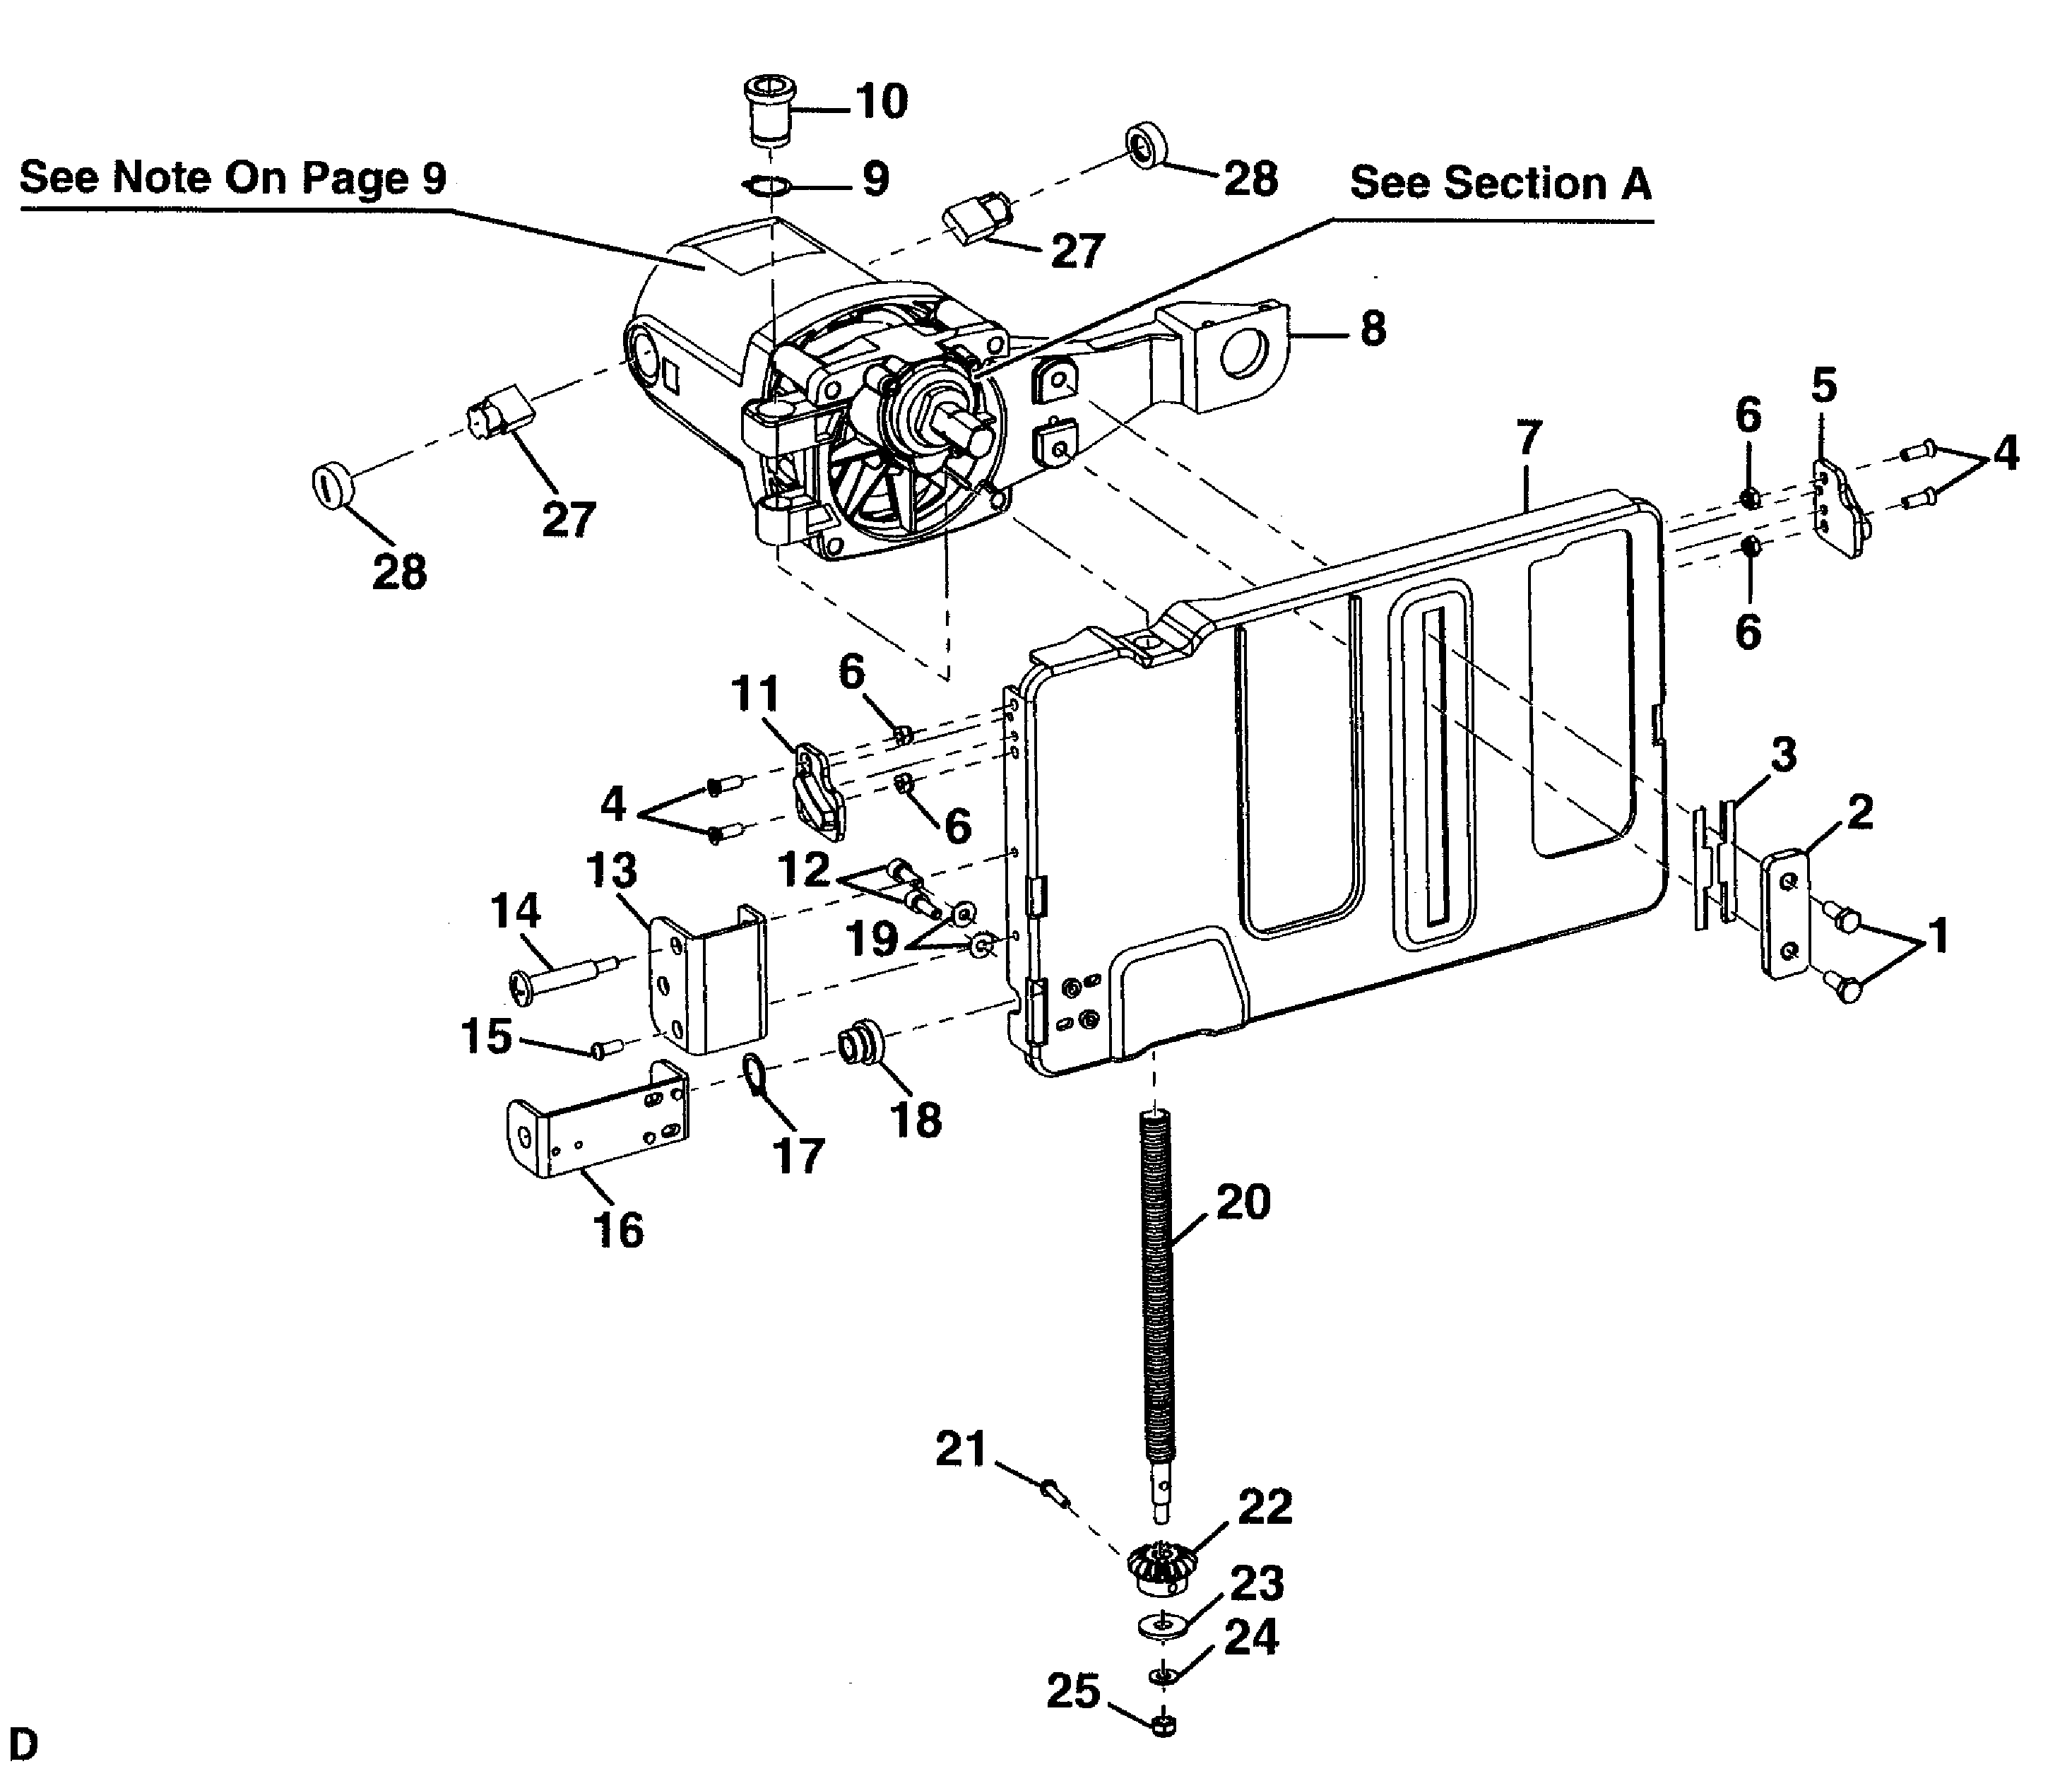 Motor For 10 Table Saw, Motor, Free Engine Image For User